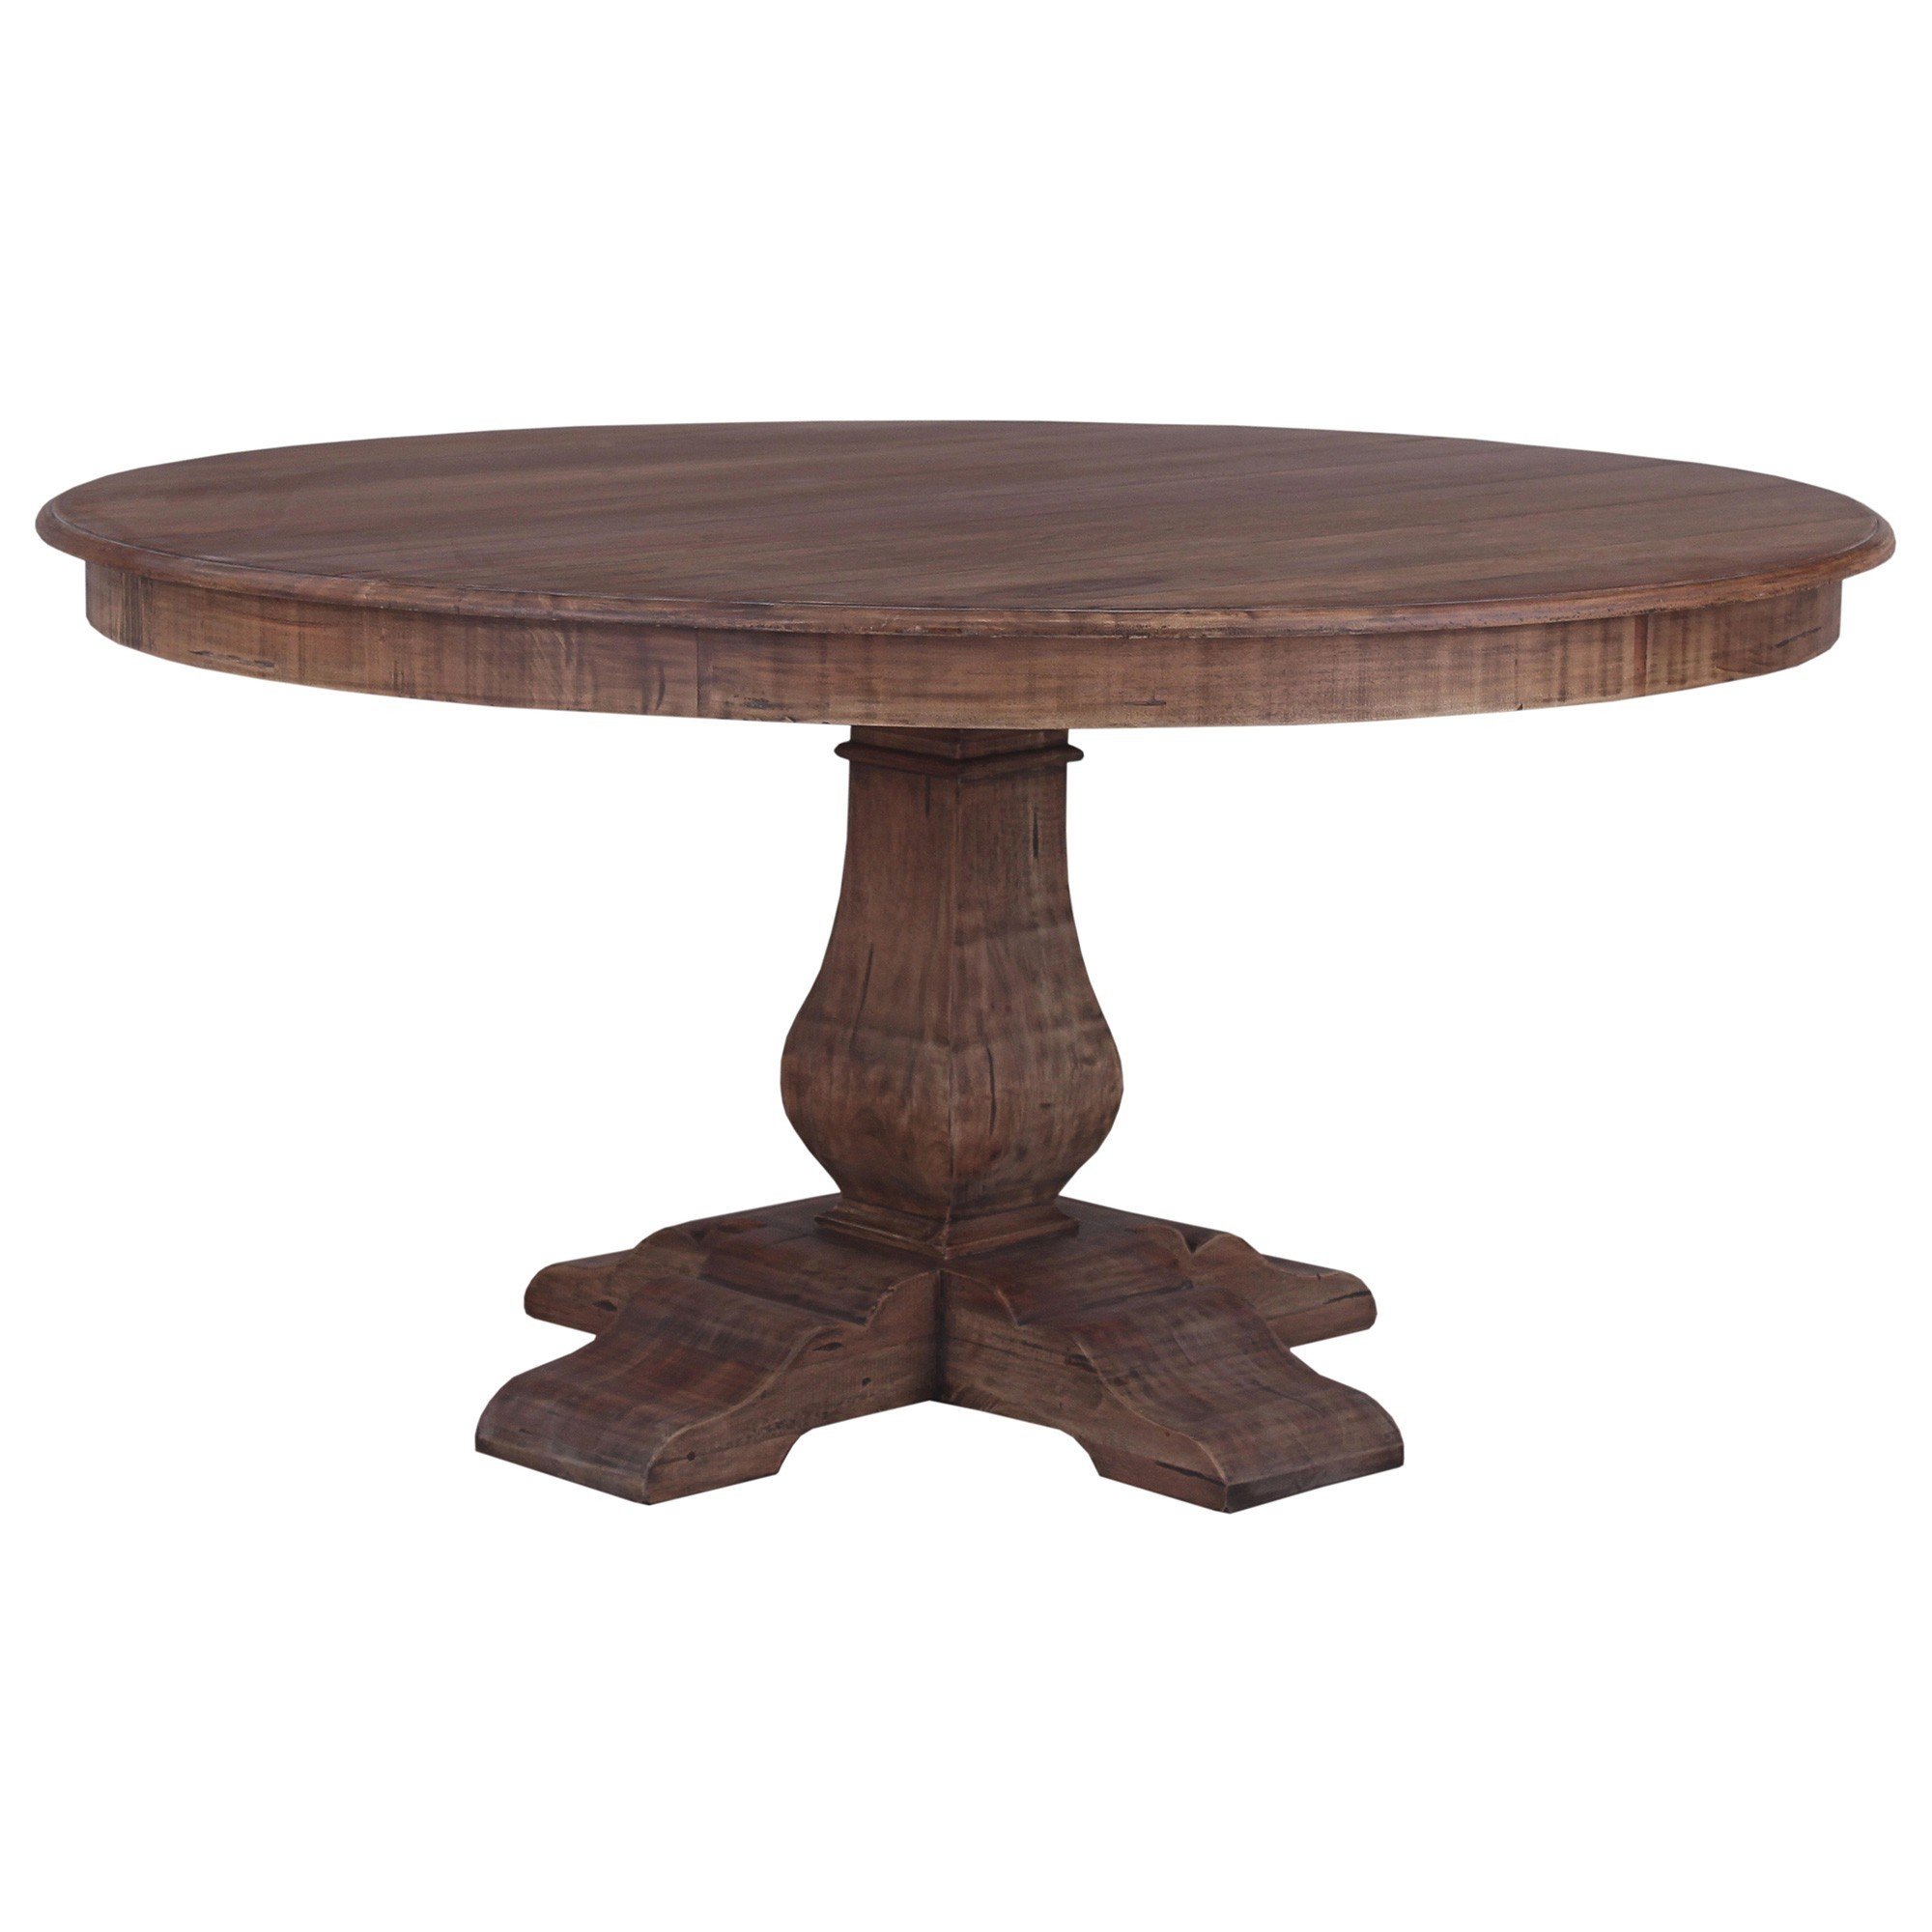 Calverton Mahogany Timber Round Dining Table, 153cm, Antique French Oak